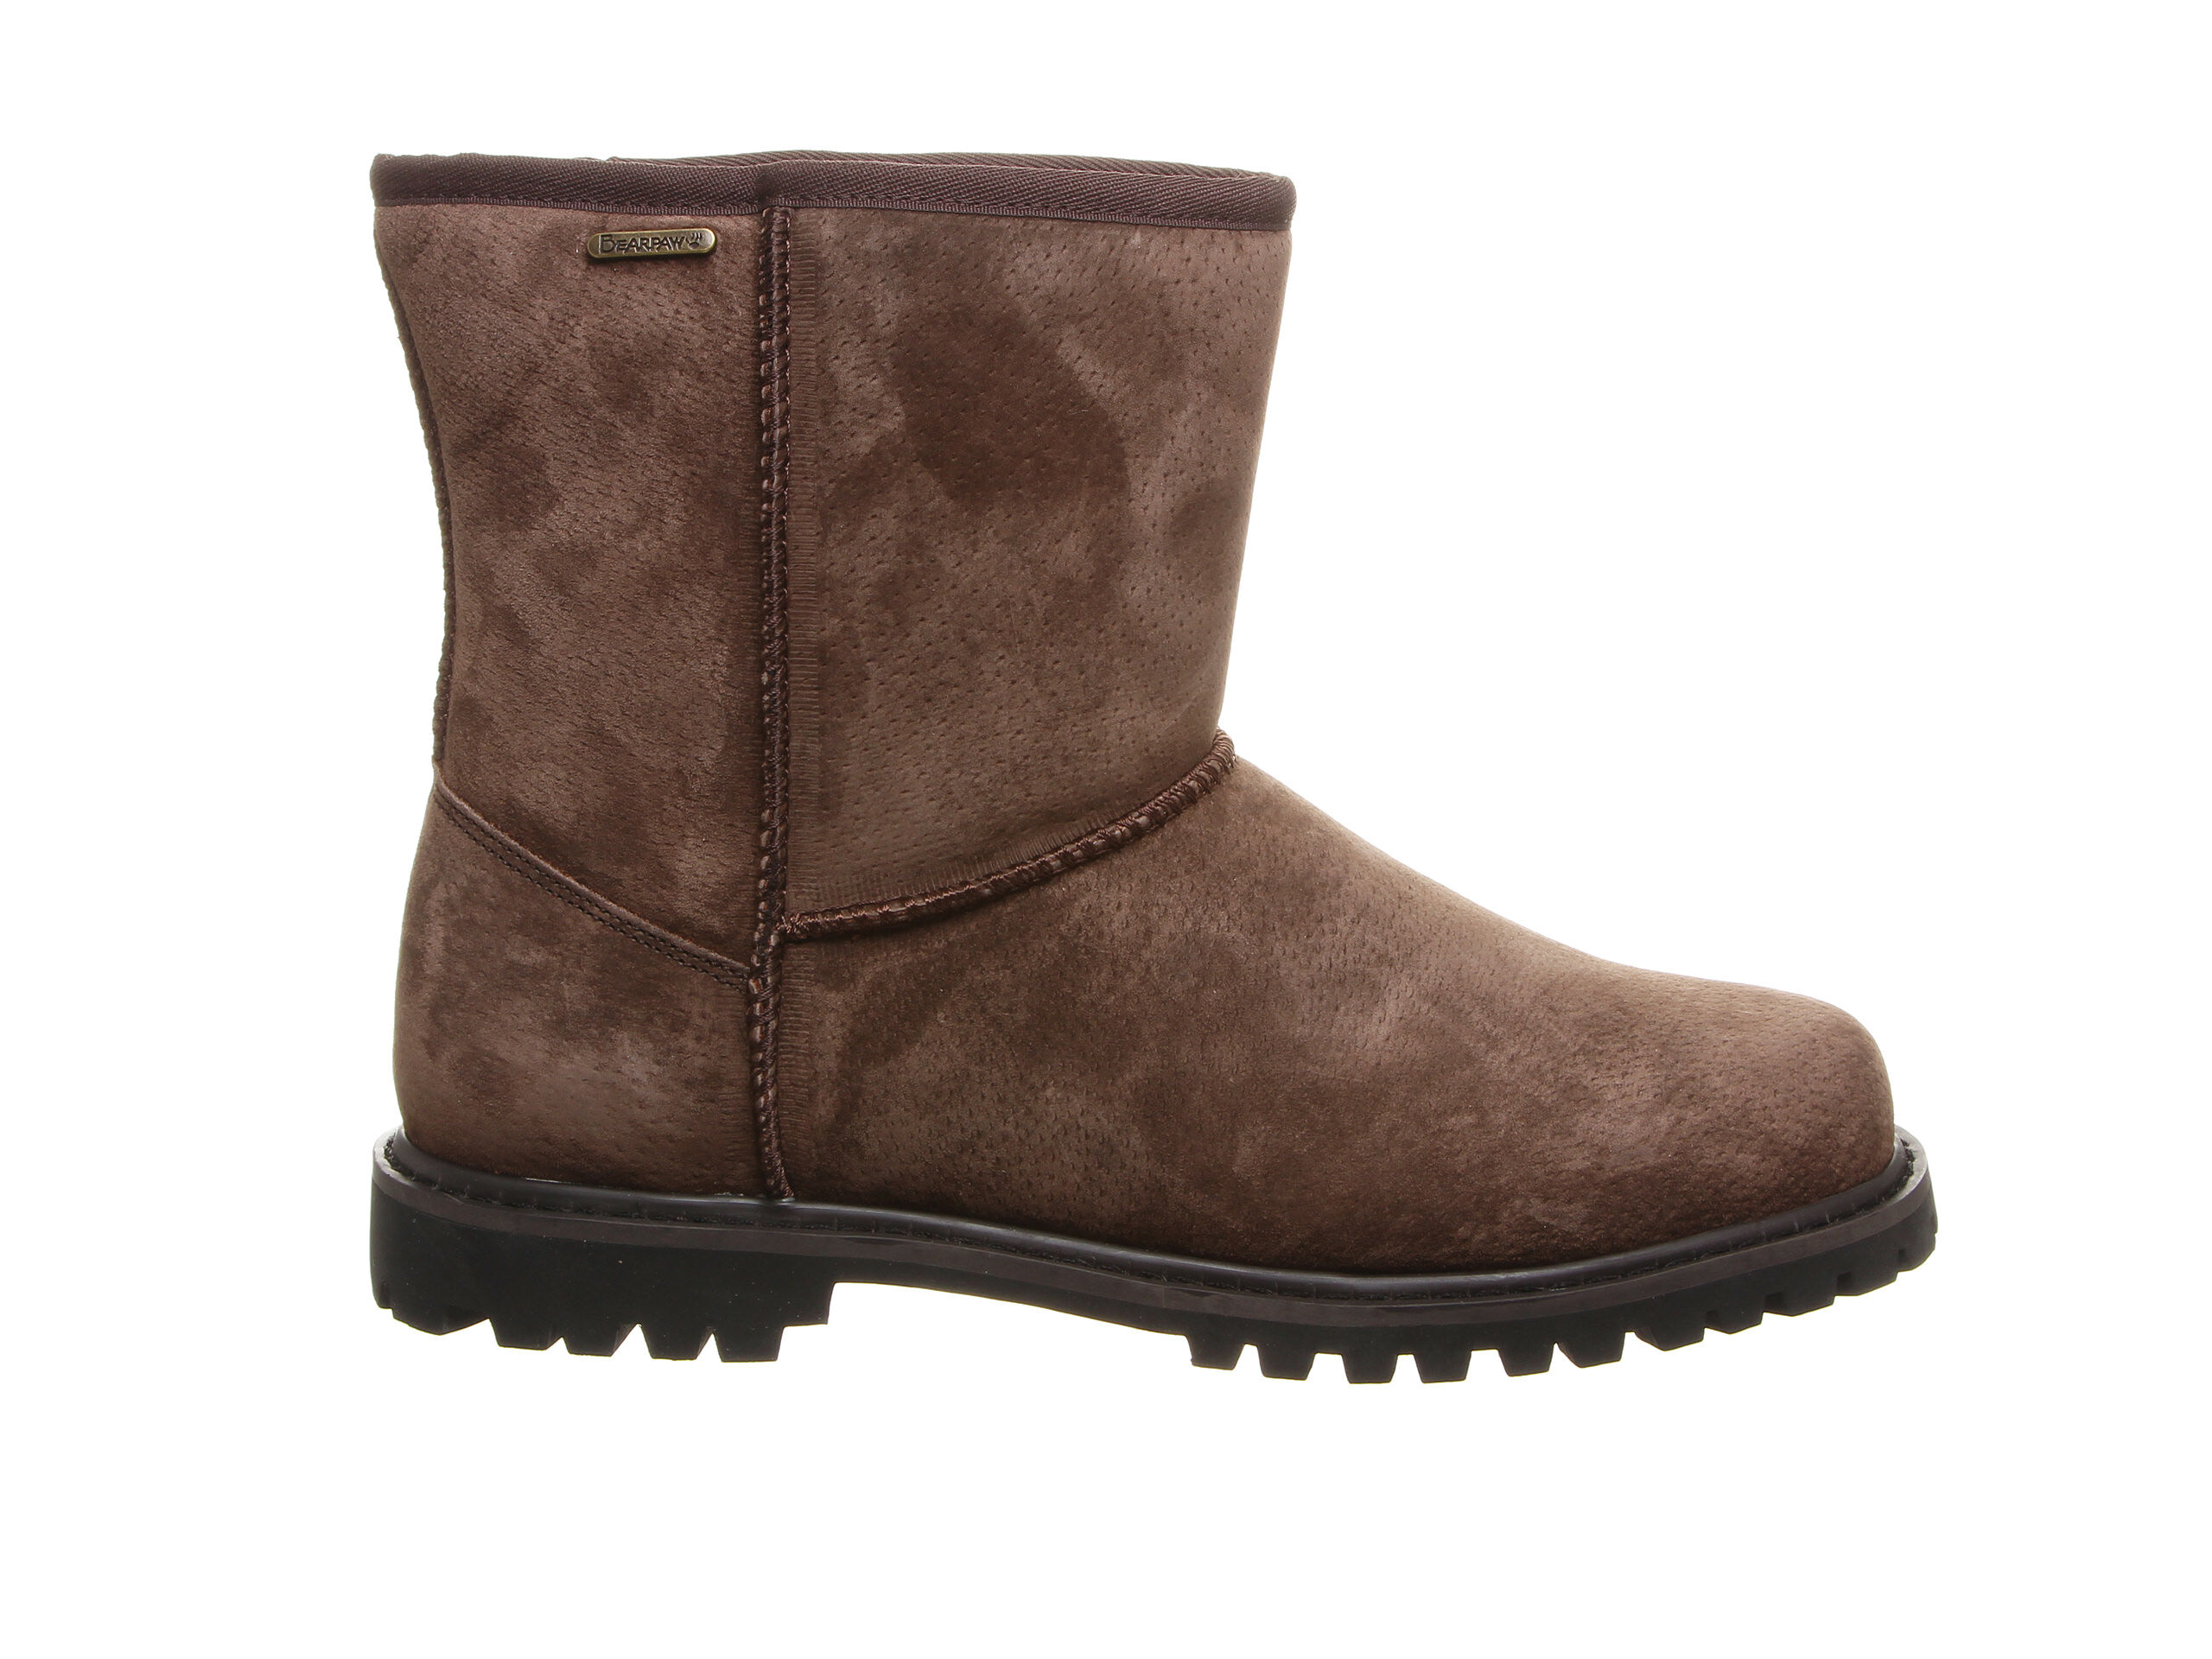 Men's Bearpaw Dante Pull-On Boots Chocolate